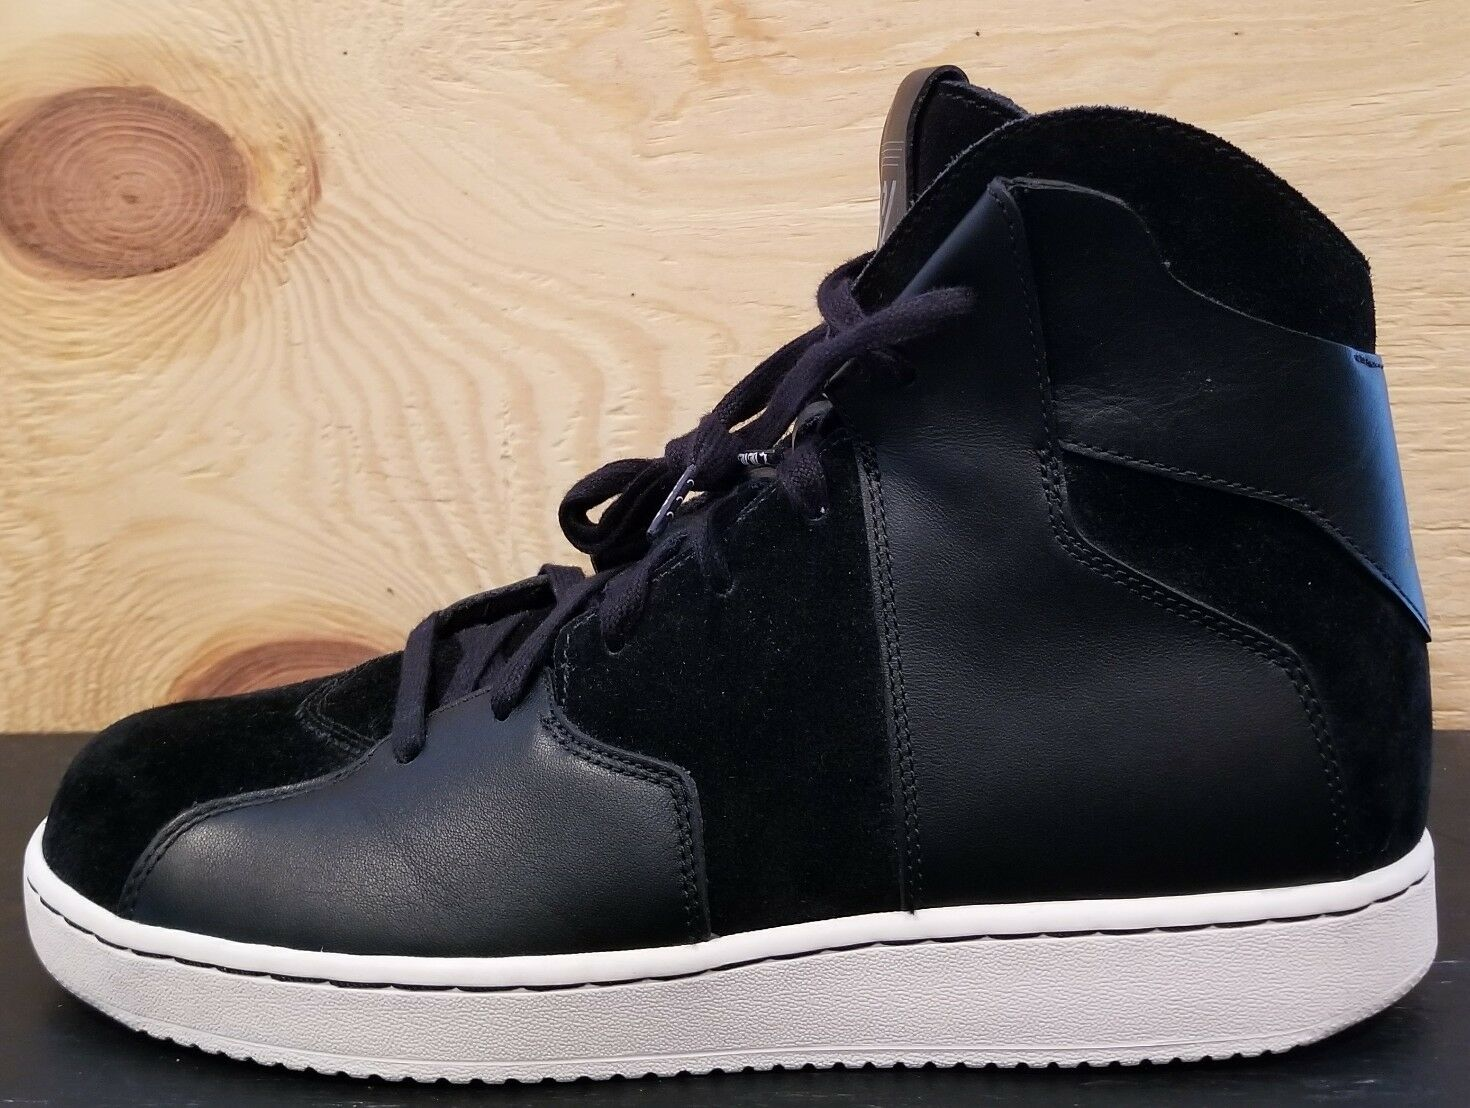 NIKE JORDAN WESTBROOK 0.2 BASKETBALL TRAINER BLK/WHT Price reduction MEN'S Price reduction The most popular shoes for men and women